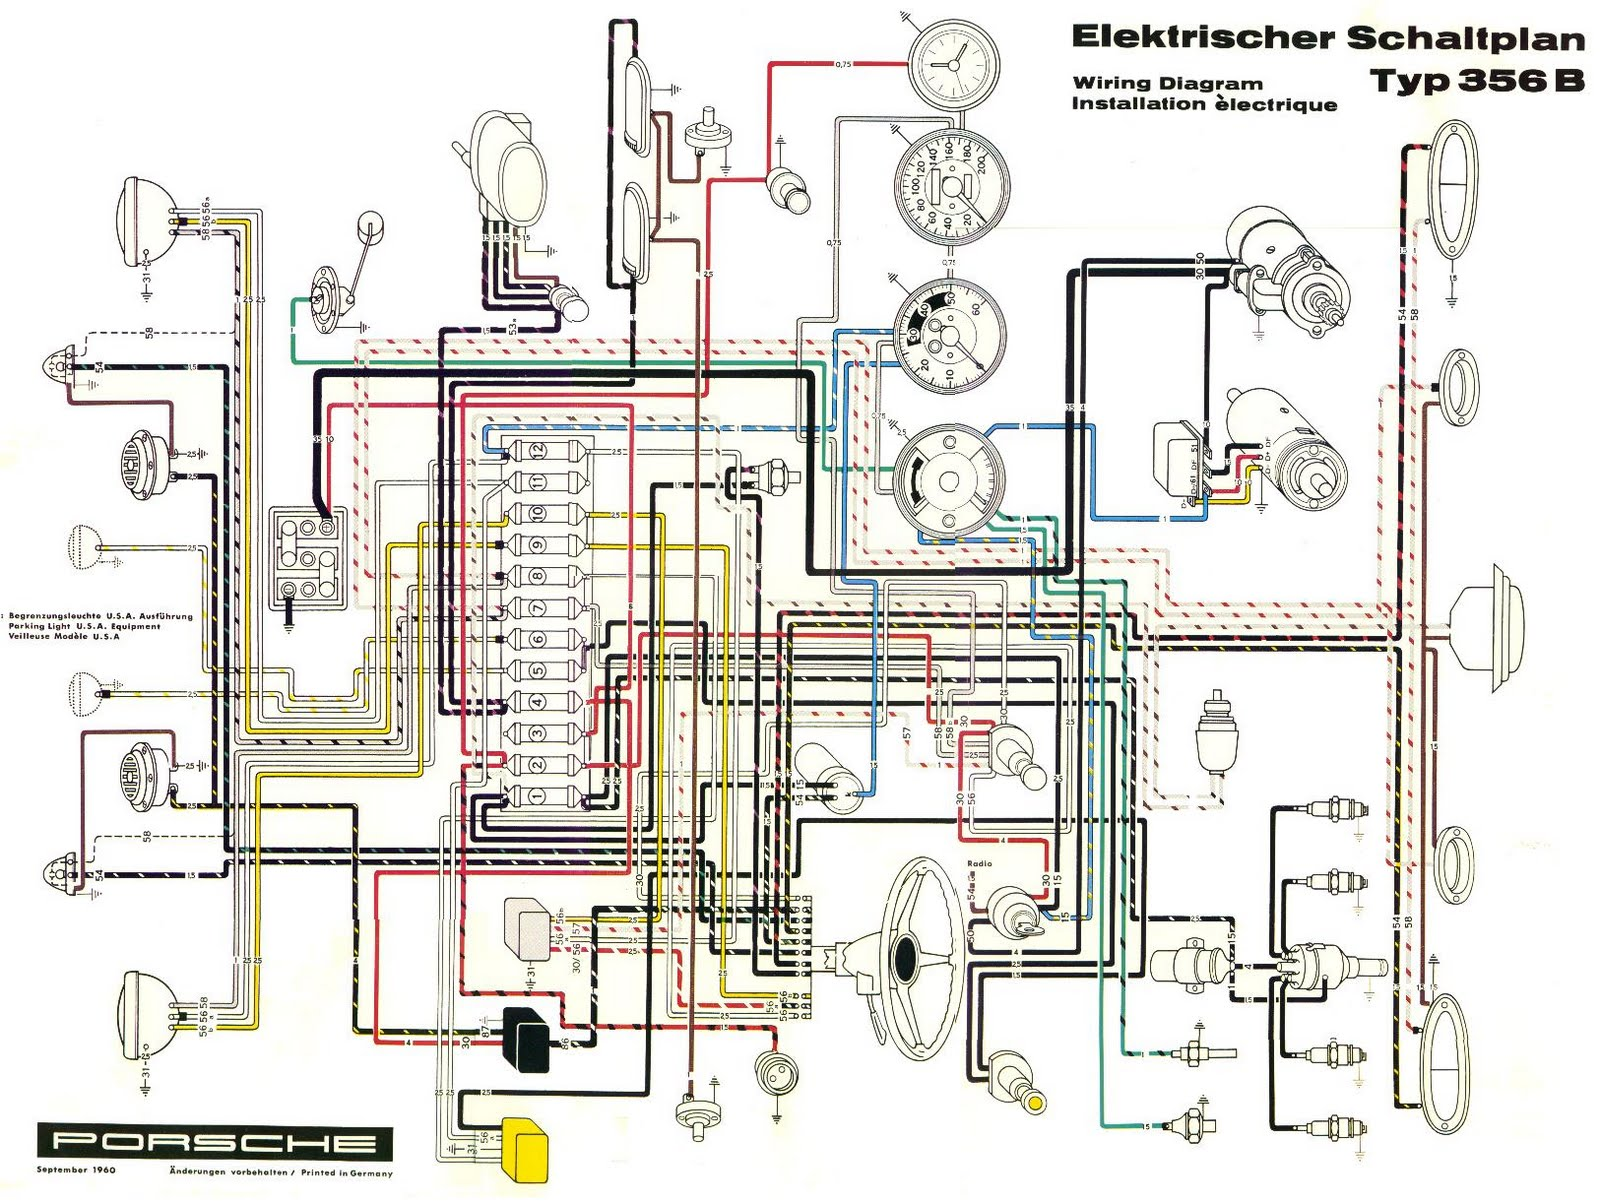 Porsche+356B+Wiring+Diagram?t=1508746814 porsche car manuals, wiring diagrams pdf & fault codes 1980 porsche 928 wiring diagram at soozxer.org